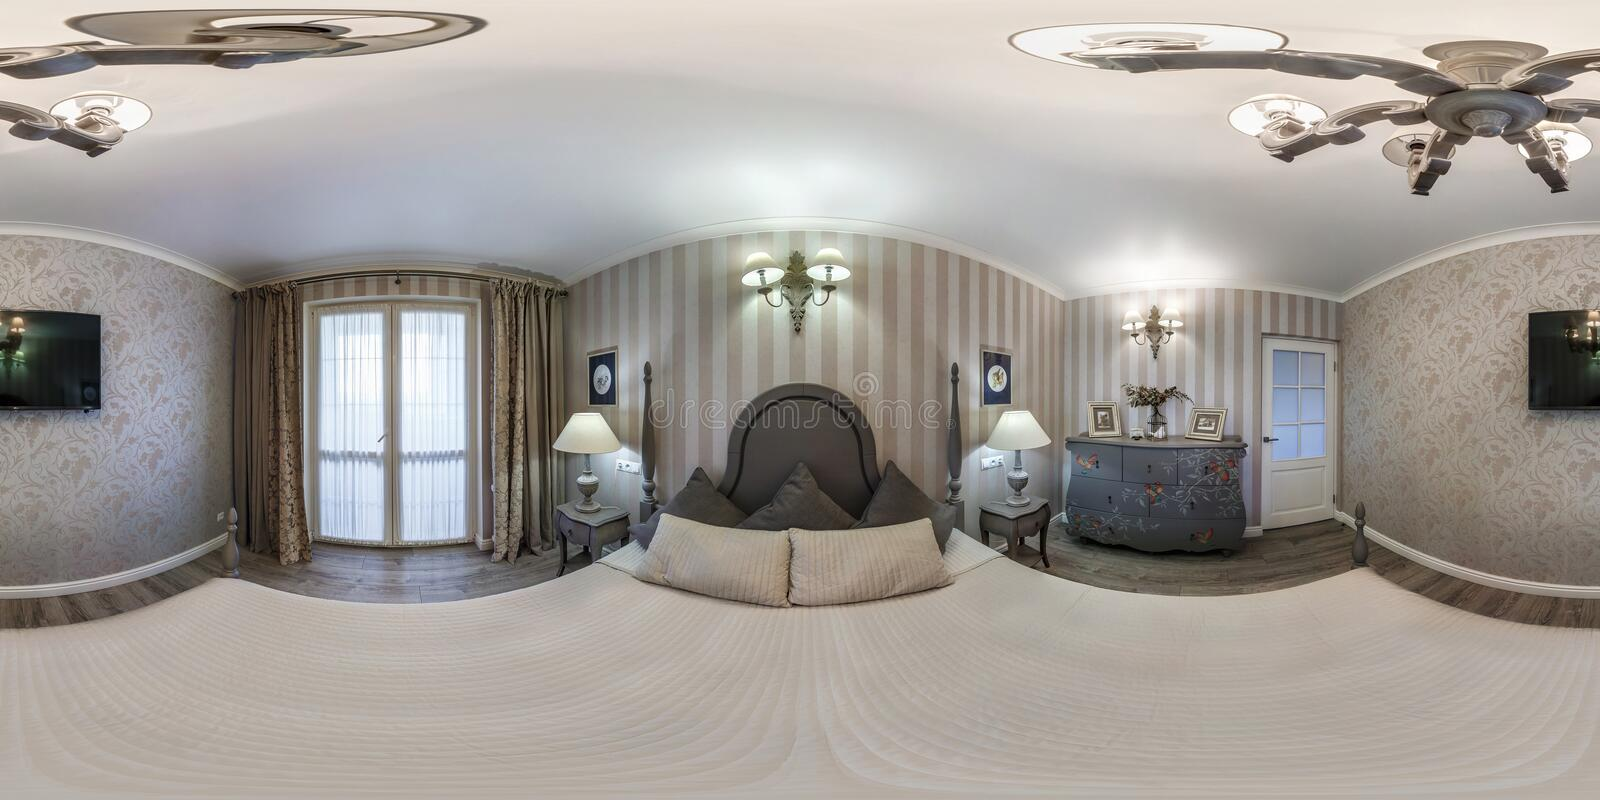 MINSK, BELARUS - MAY, 2019: Full spherical seamless hdri panorama 360 degrees angle view inside interior of master bedroom of stock image